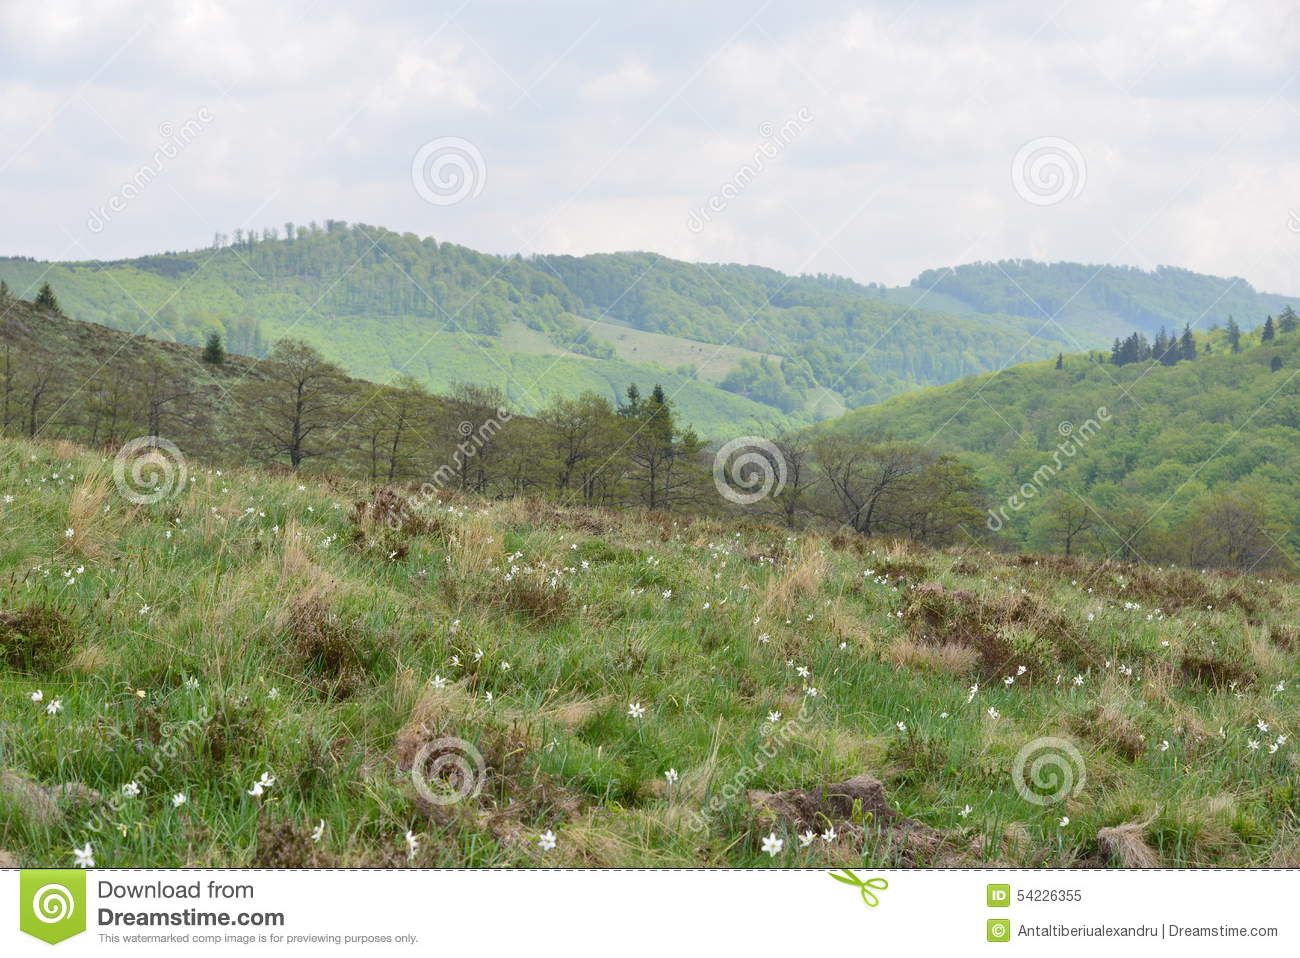 Landscape with the Daffodils Glade (in Romanian: Poiana Narciselor) and mountains.